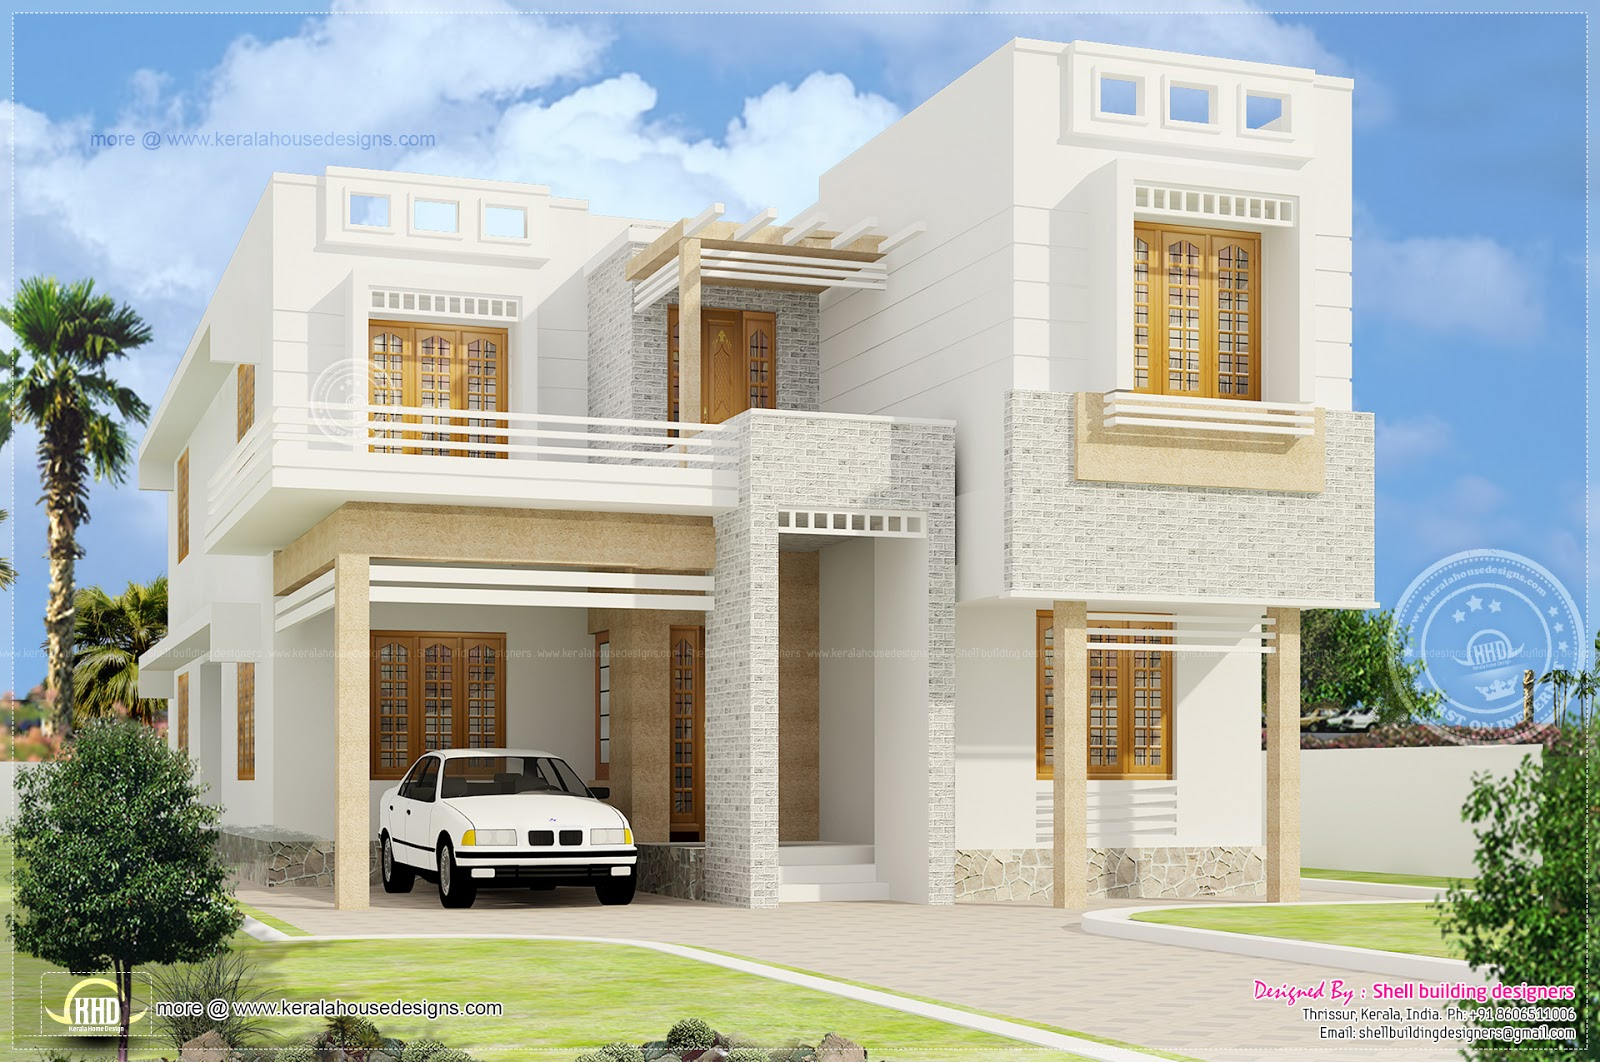 Beautiful 4 bedroom house exterior elevation kerala home Good house designs in india